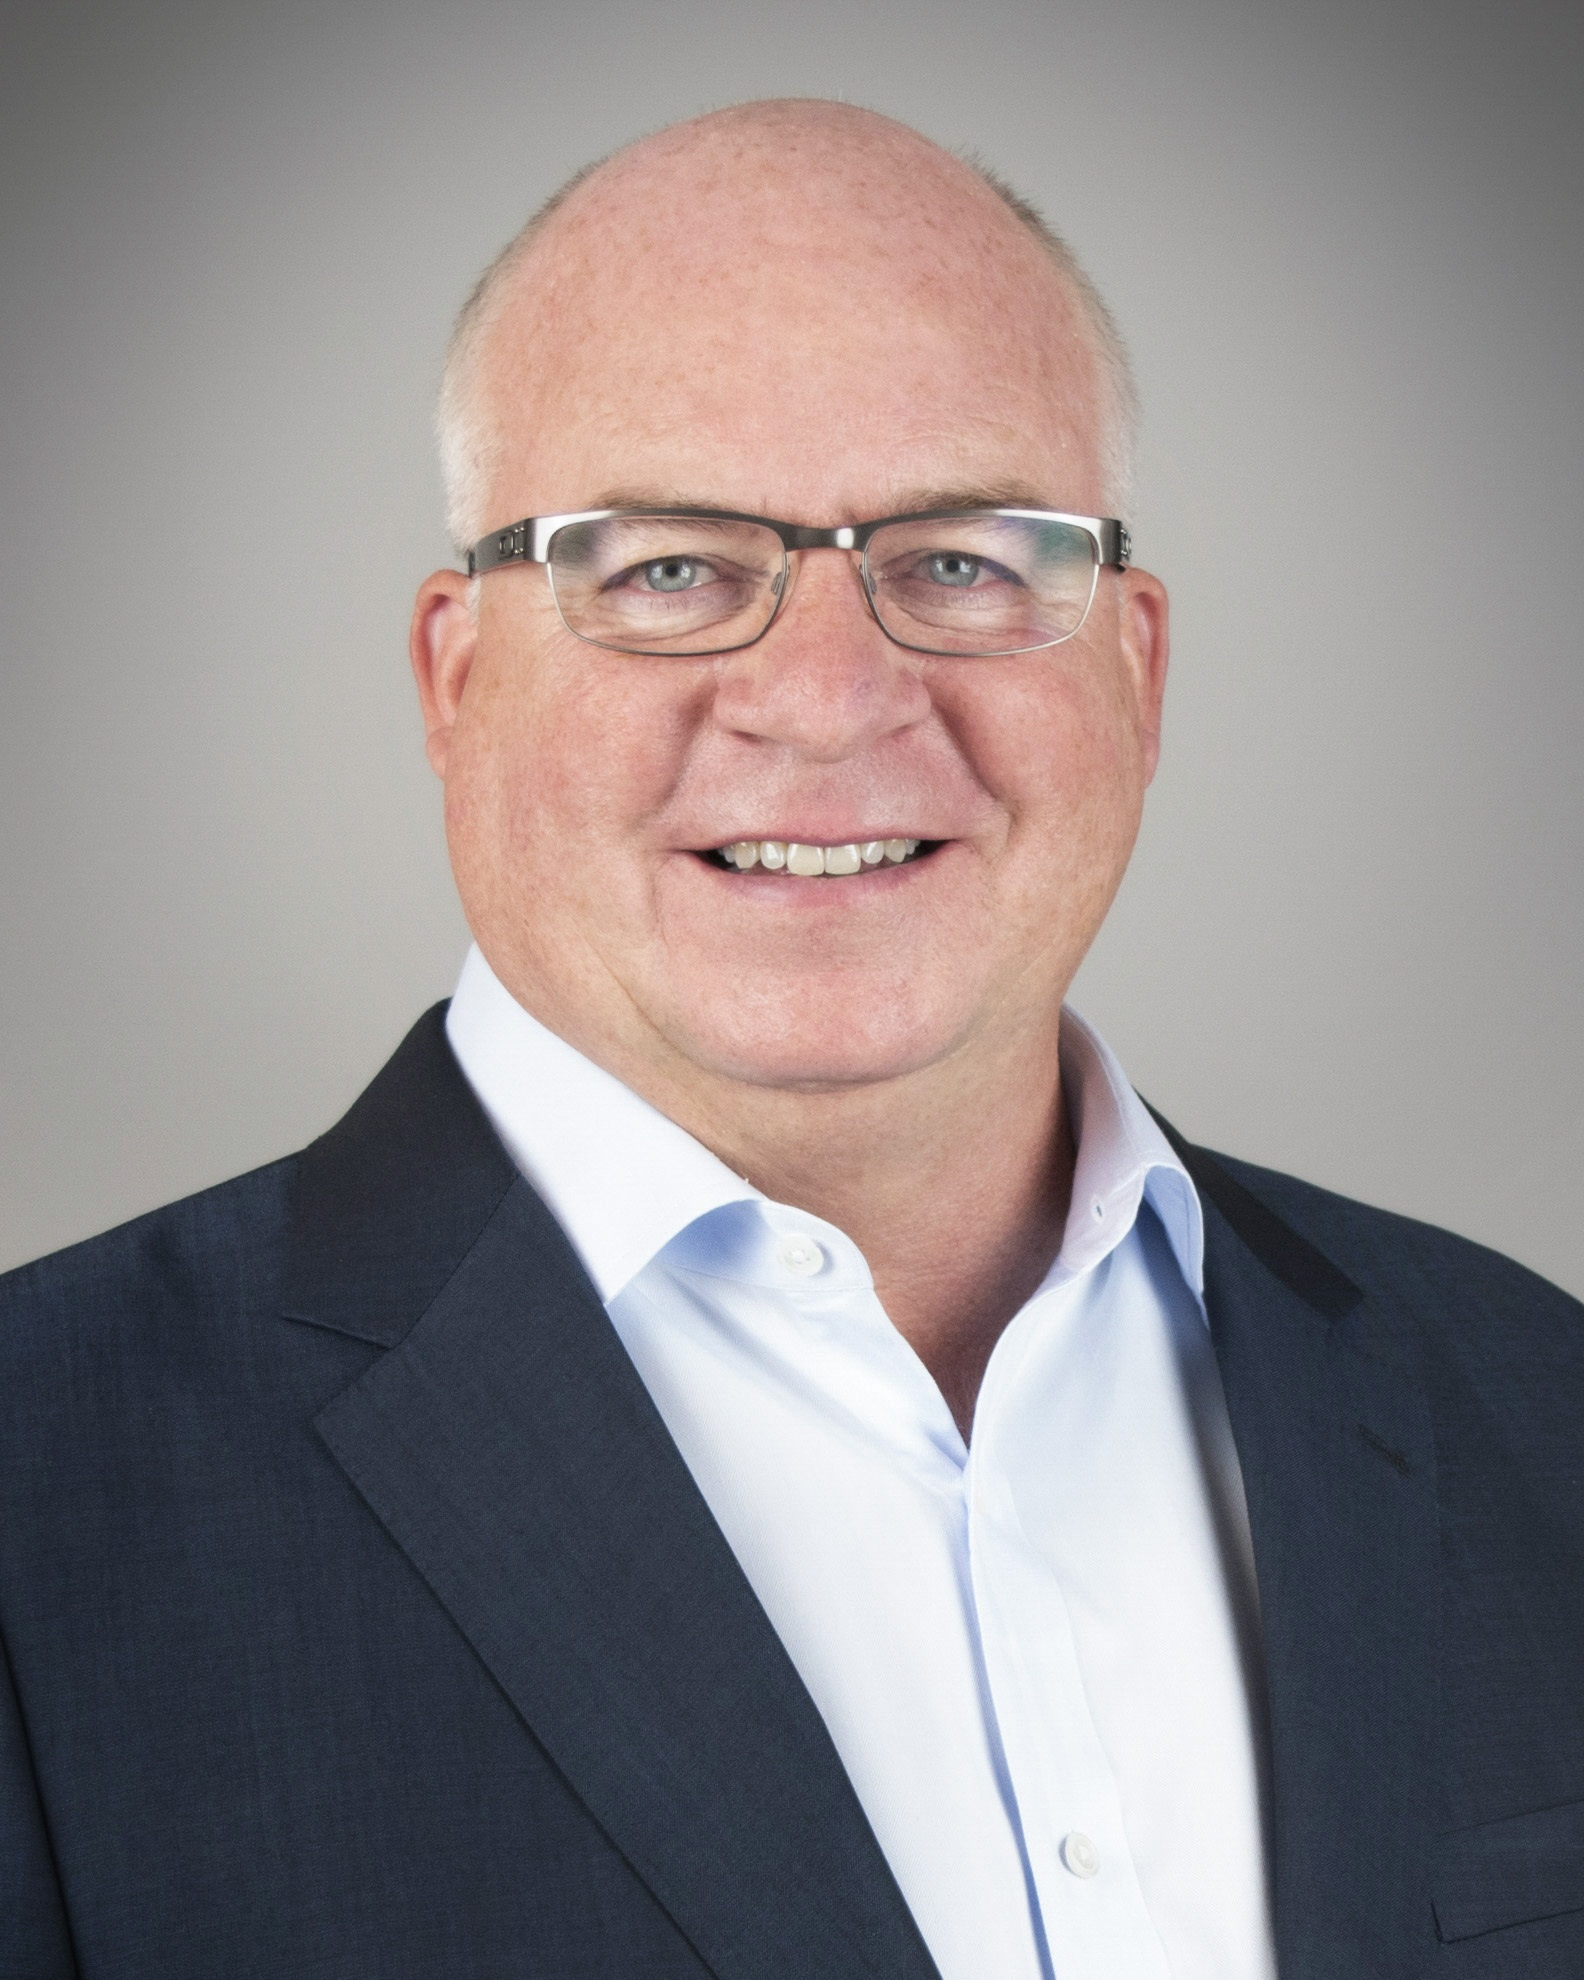 Ford, Bruce Transwestern Names Bruce Ford As President of Transwestern Commercial Services' East Region